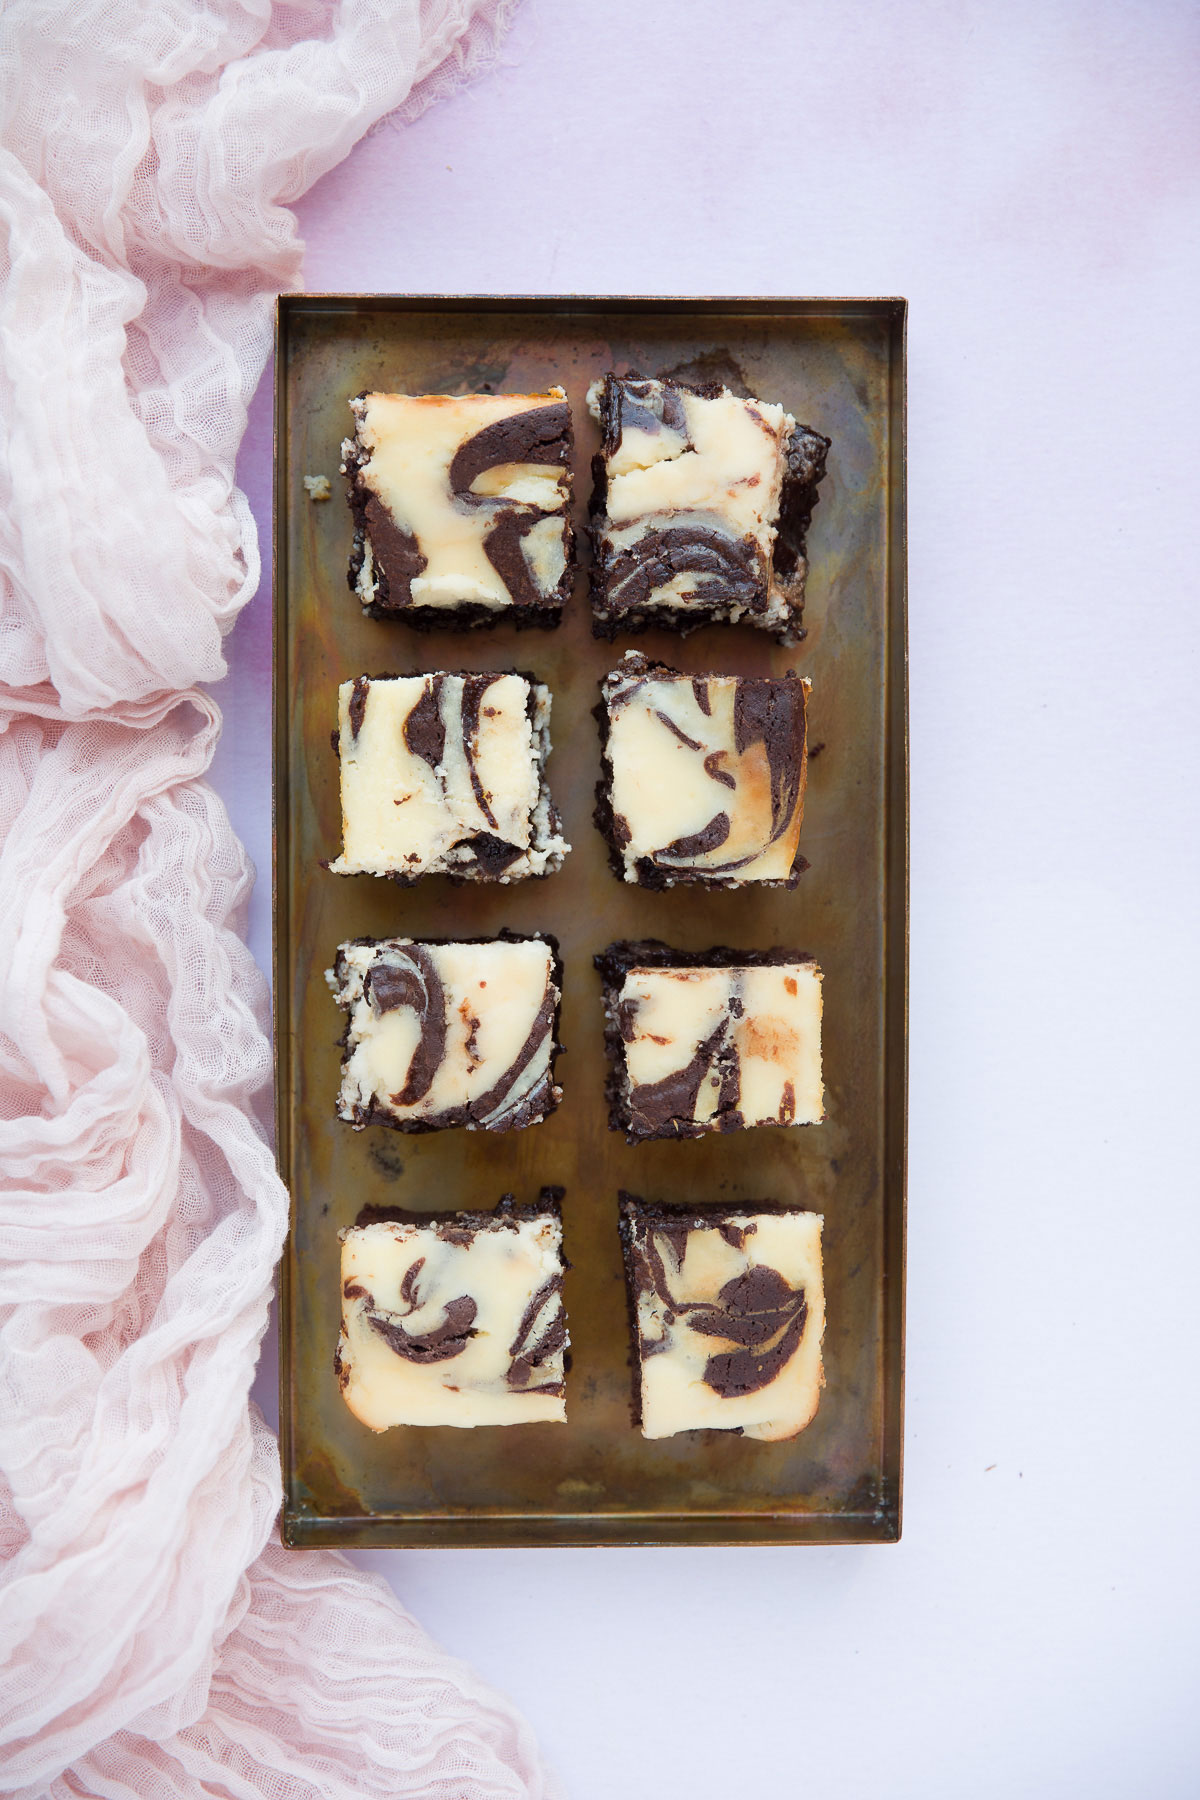 eight brownies on a serving dish with a pink towel on the side.